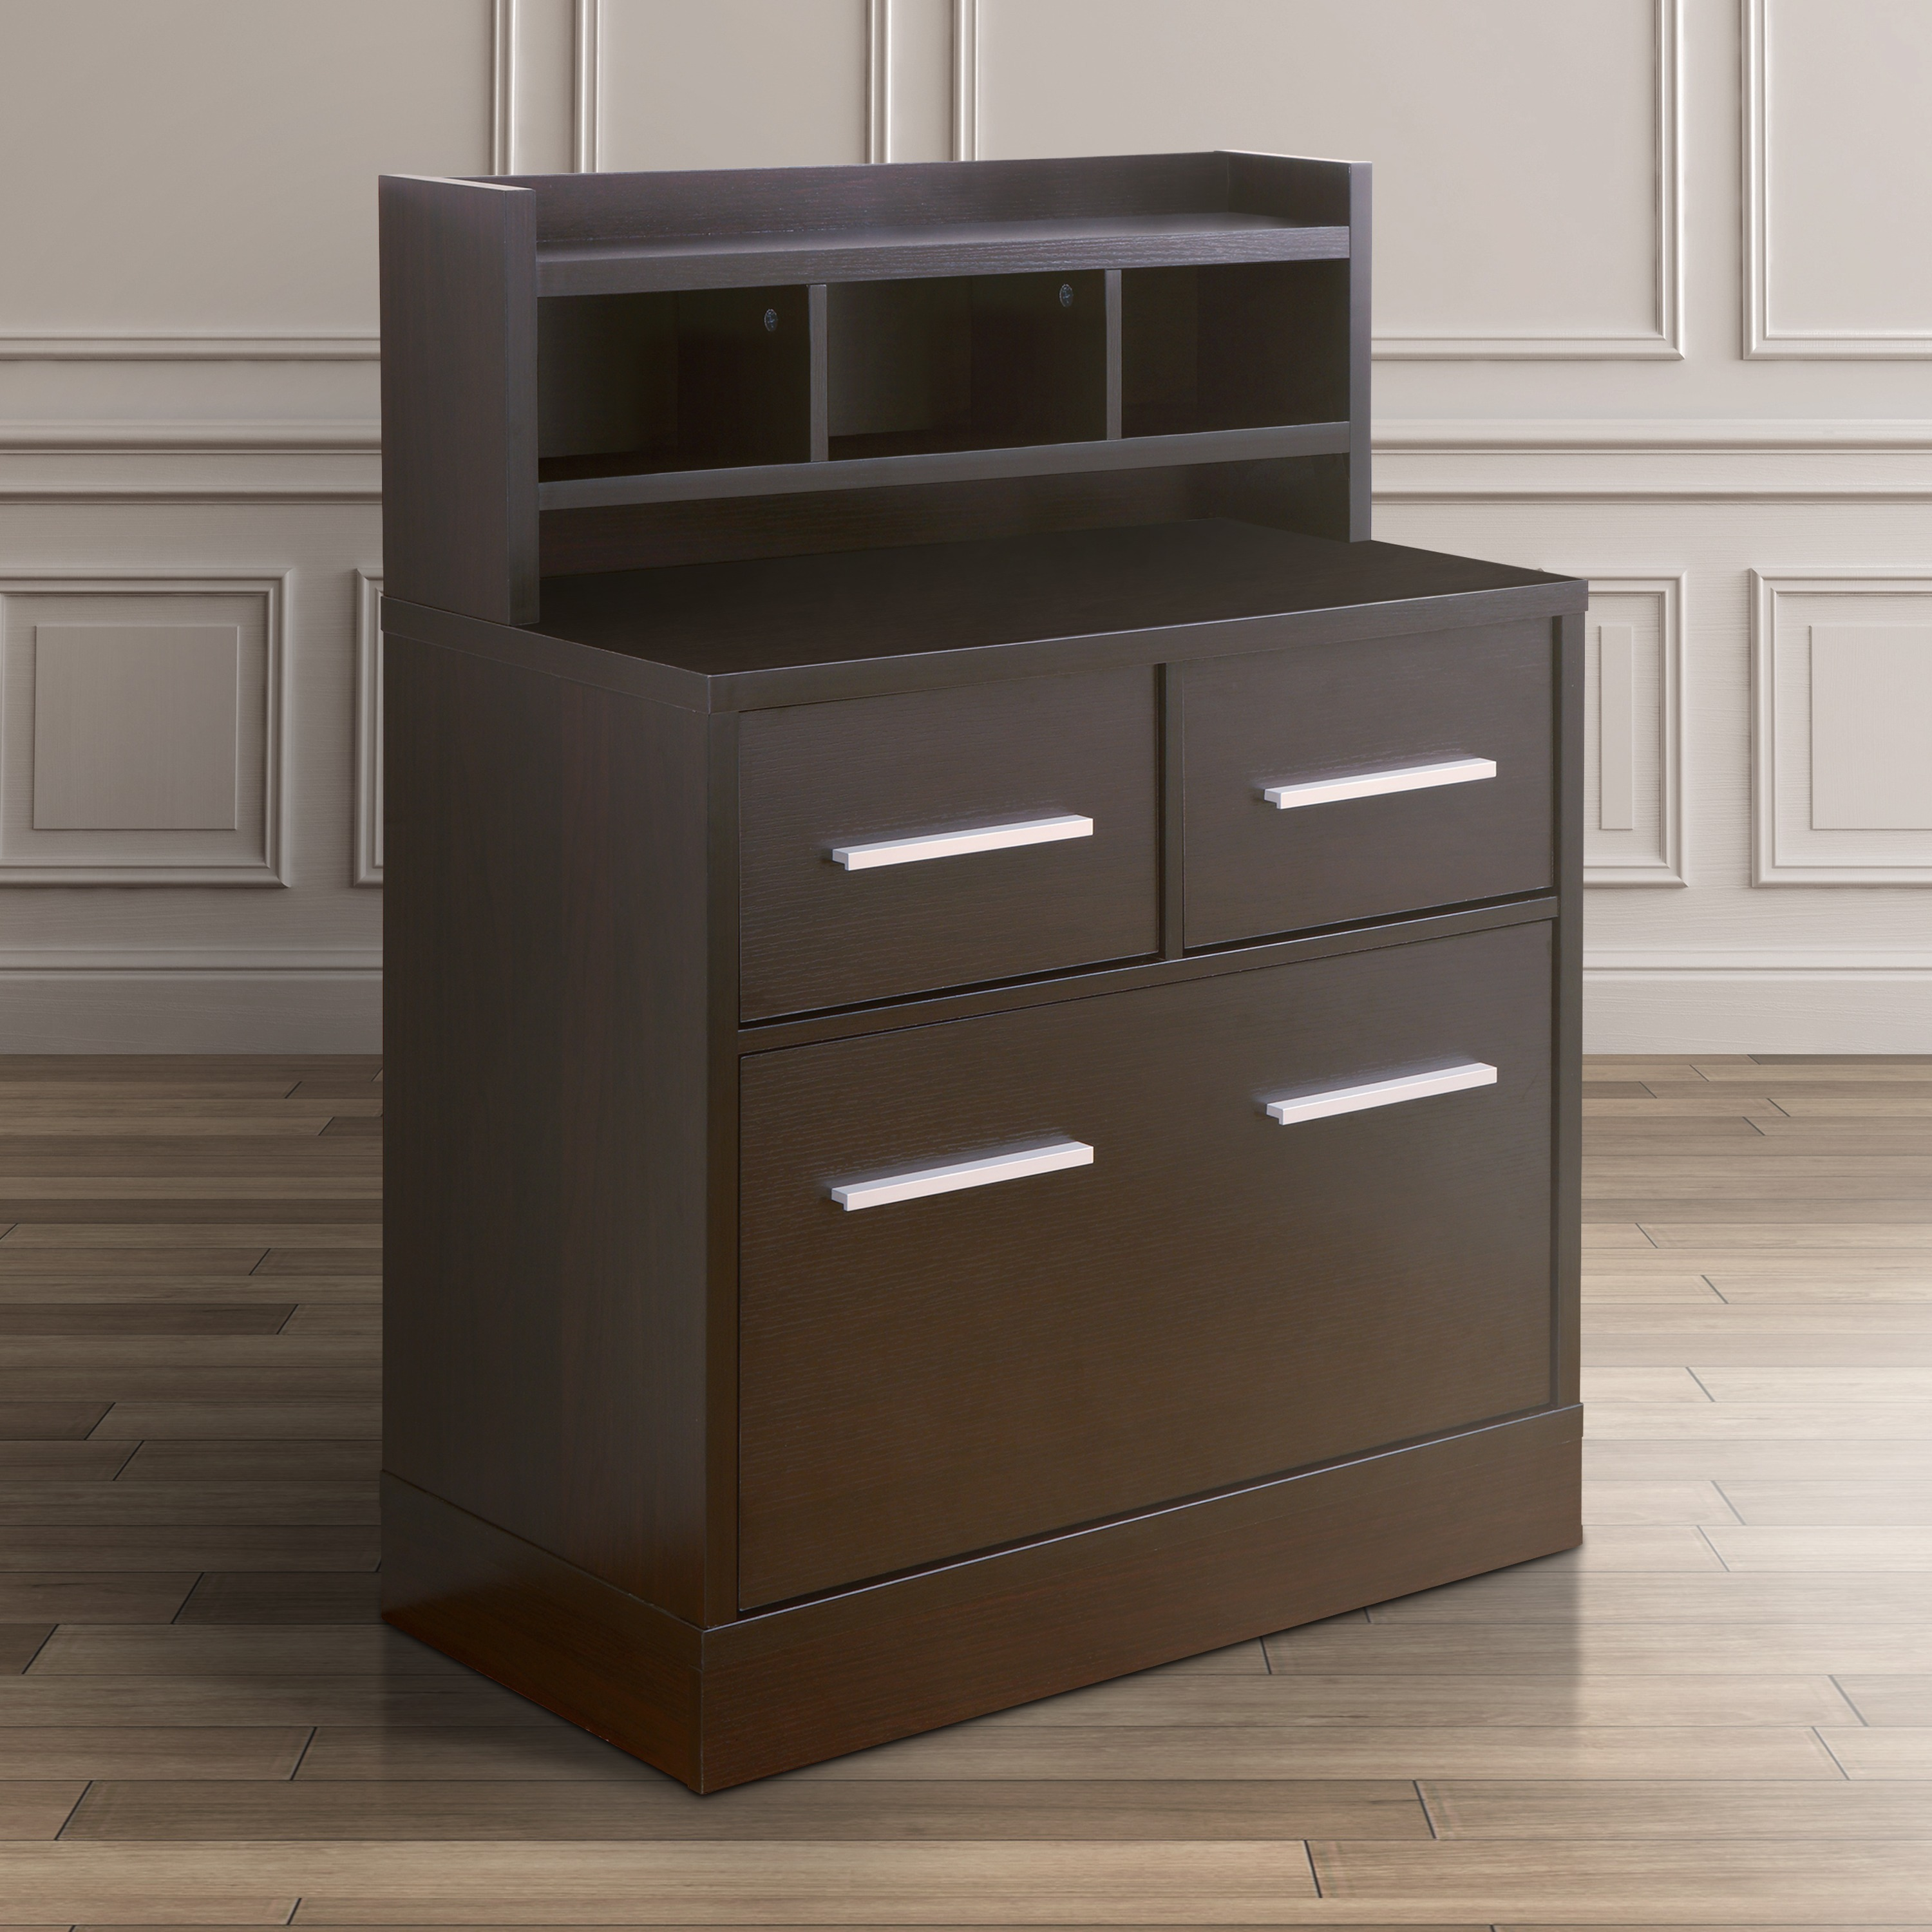 drawers multi drawer door shipping storage product today garden cabinet doors overstock home free colored mercer with ameriwood